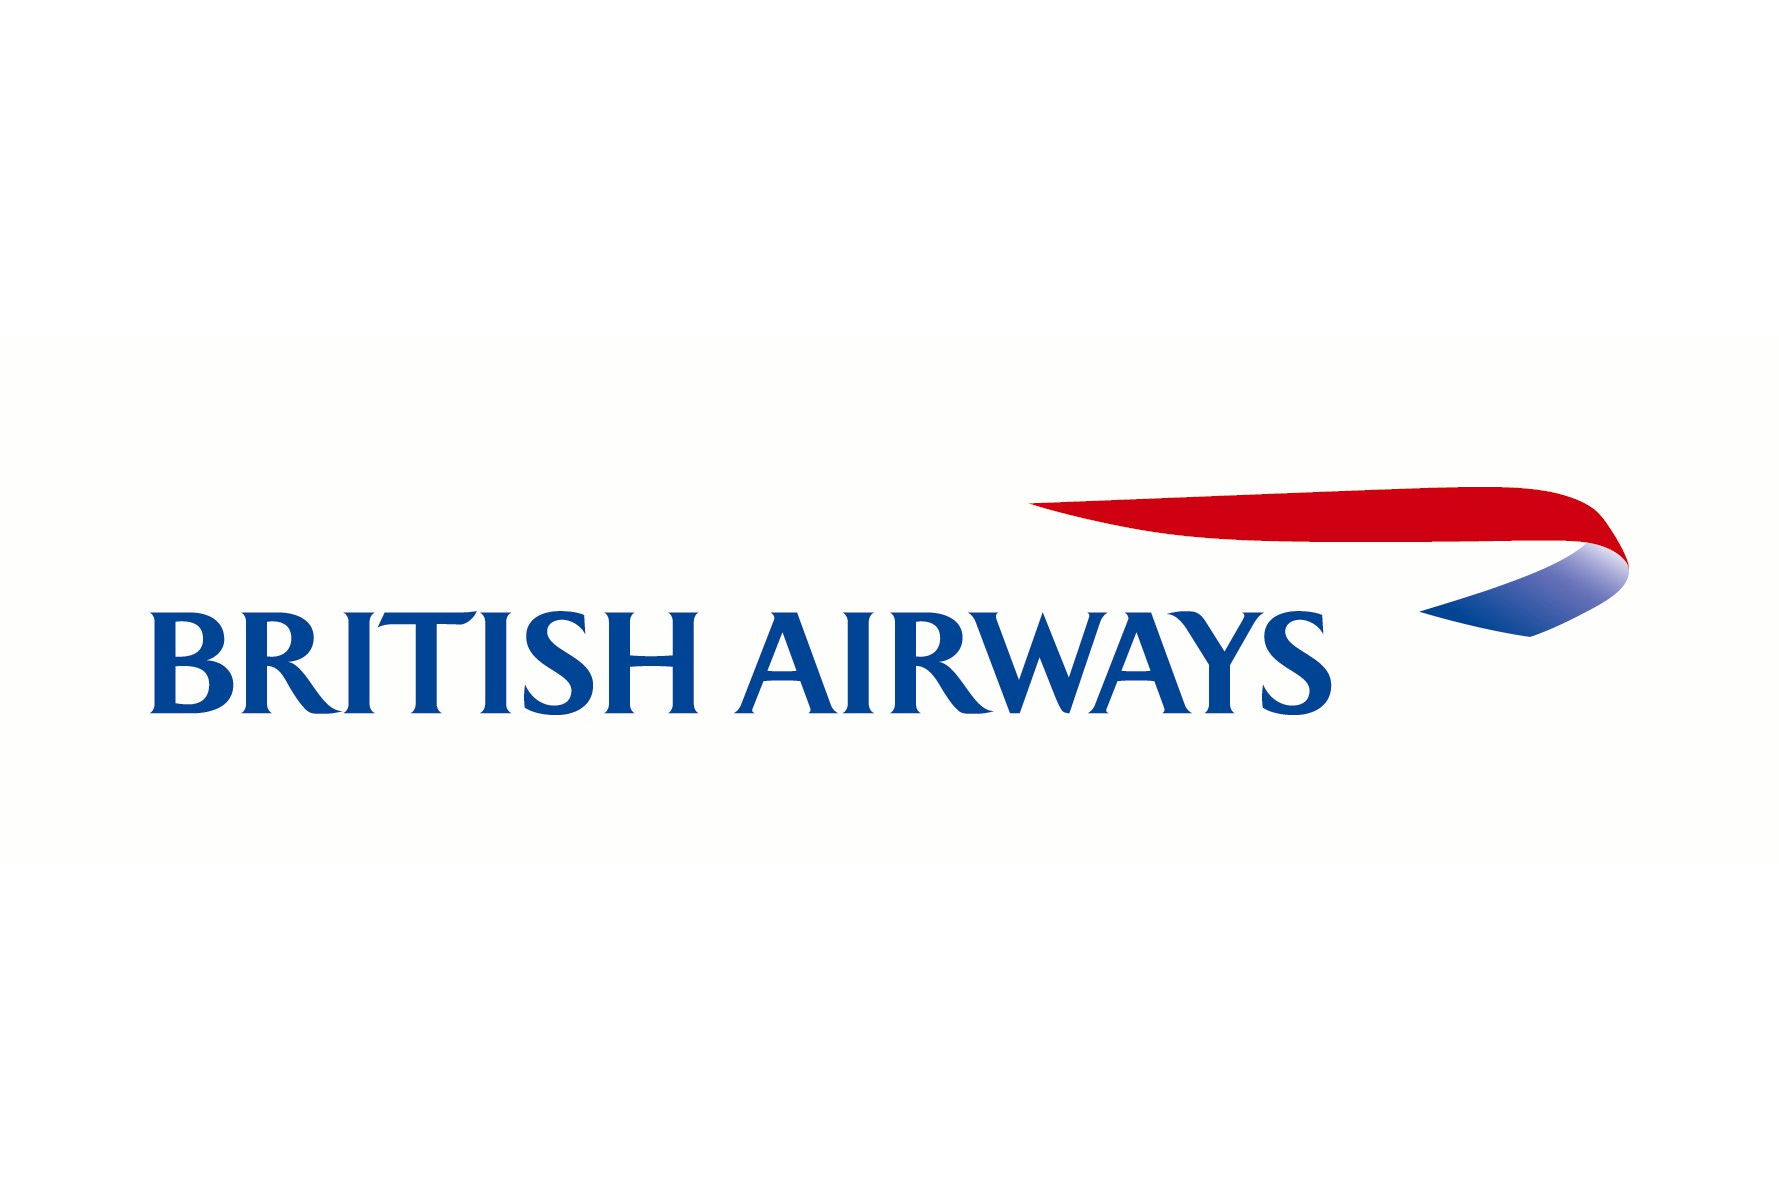 british airways case study analysis